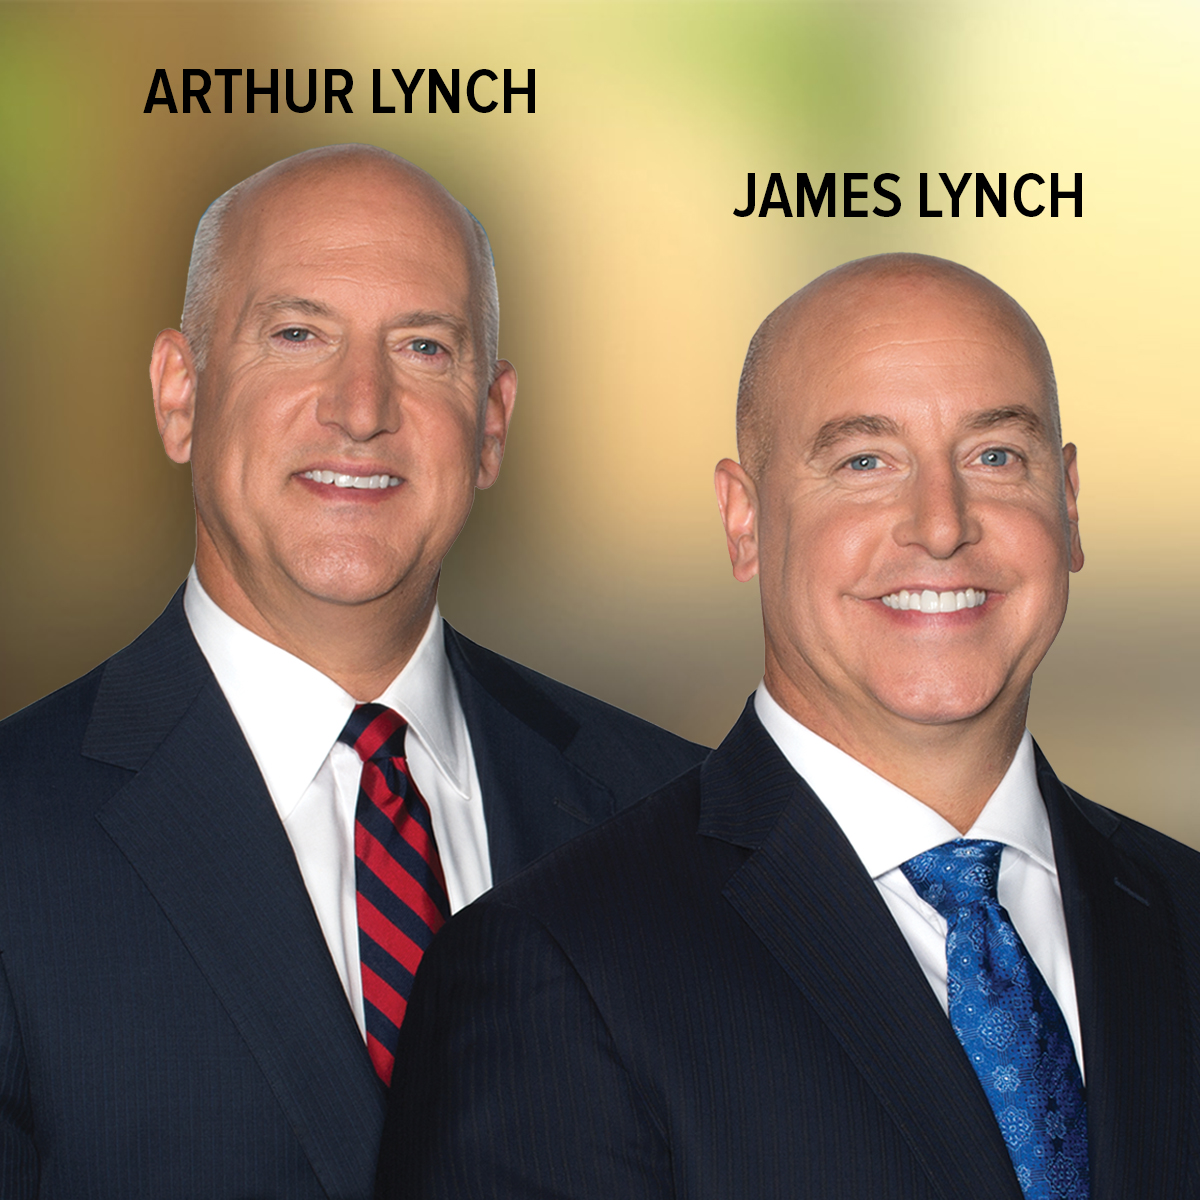 Lynch lawyers for blue - Since 1994, Lynch Law Firm has been a staunch advocate for the injured, helping defend their rights against negligent parties, large corporations and major insurance providers who have wronged them or caused them harm.